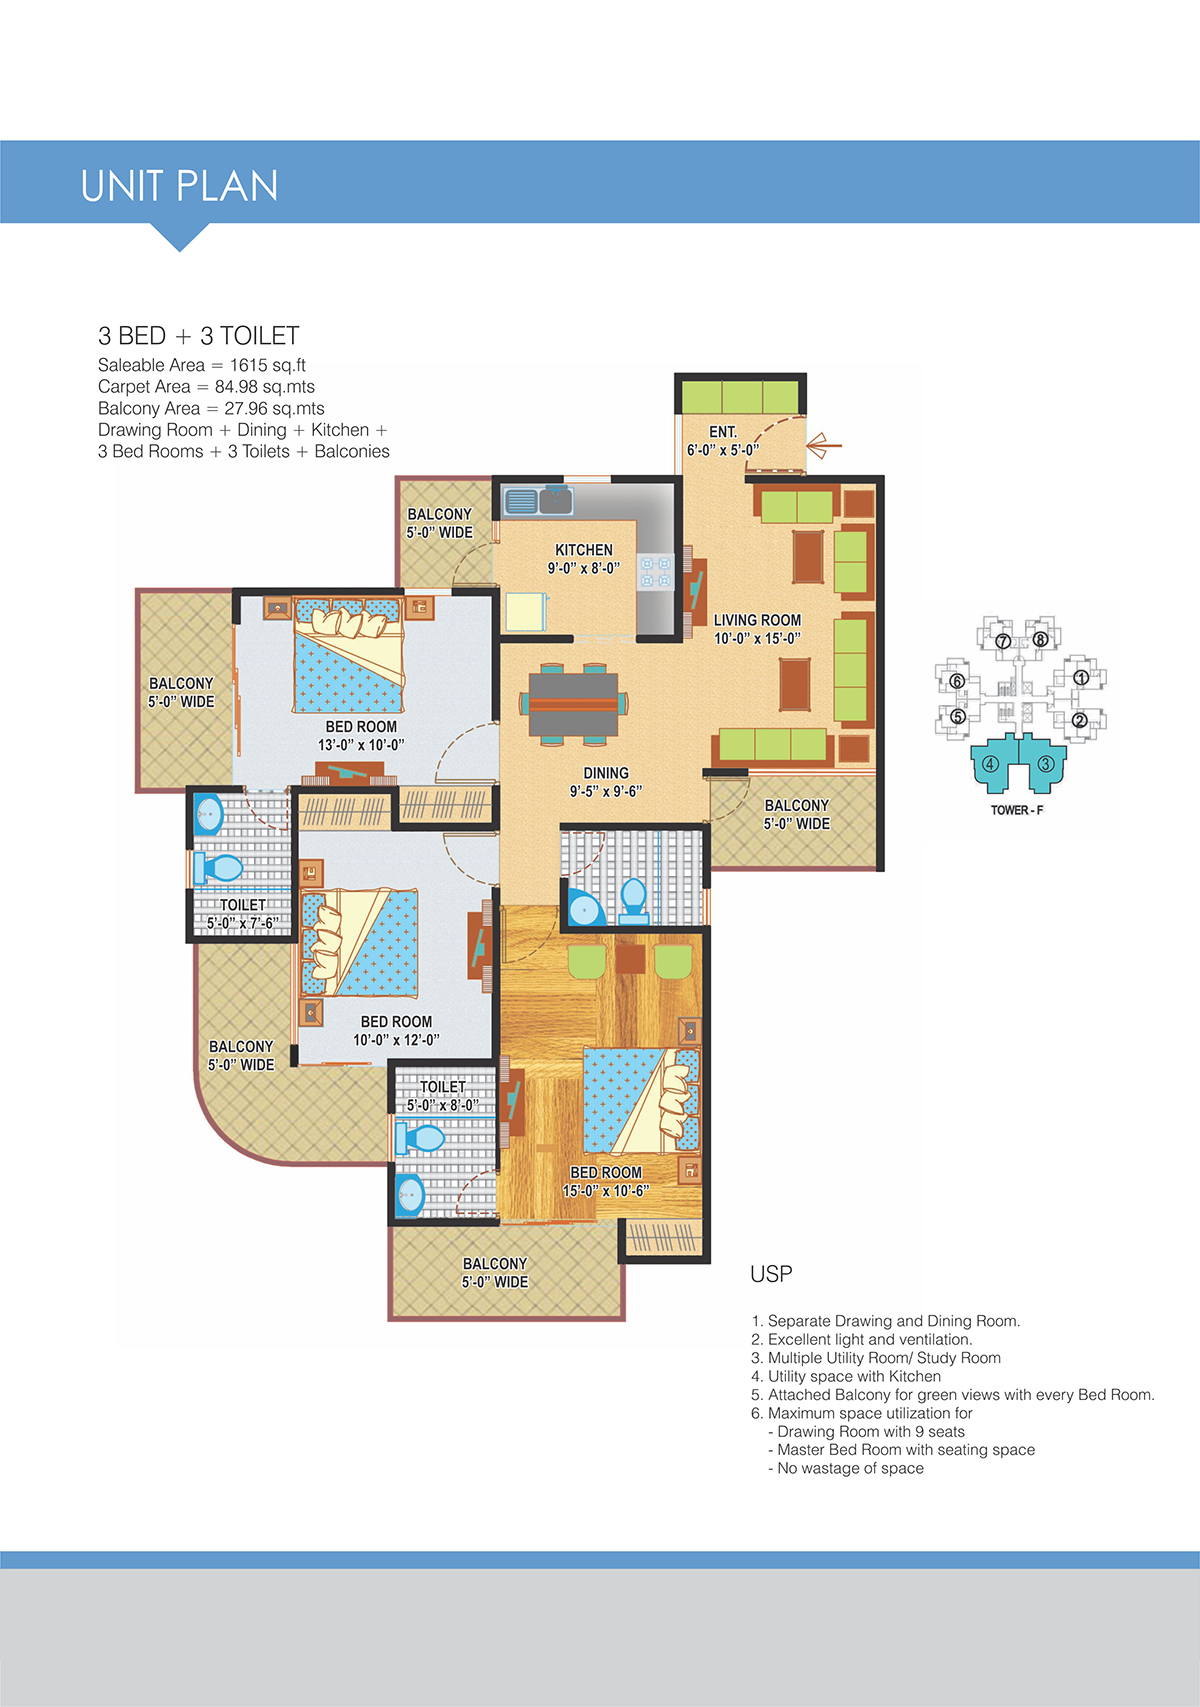 3BHK Floor Plan(1615sq ft)